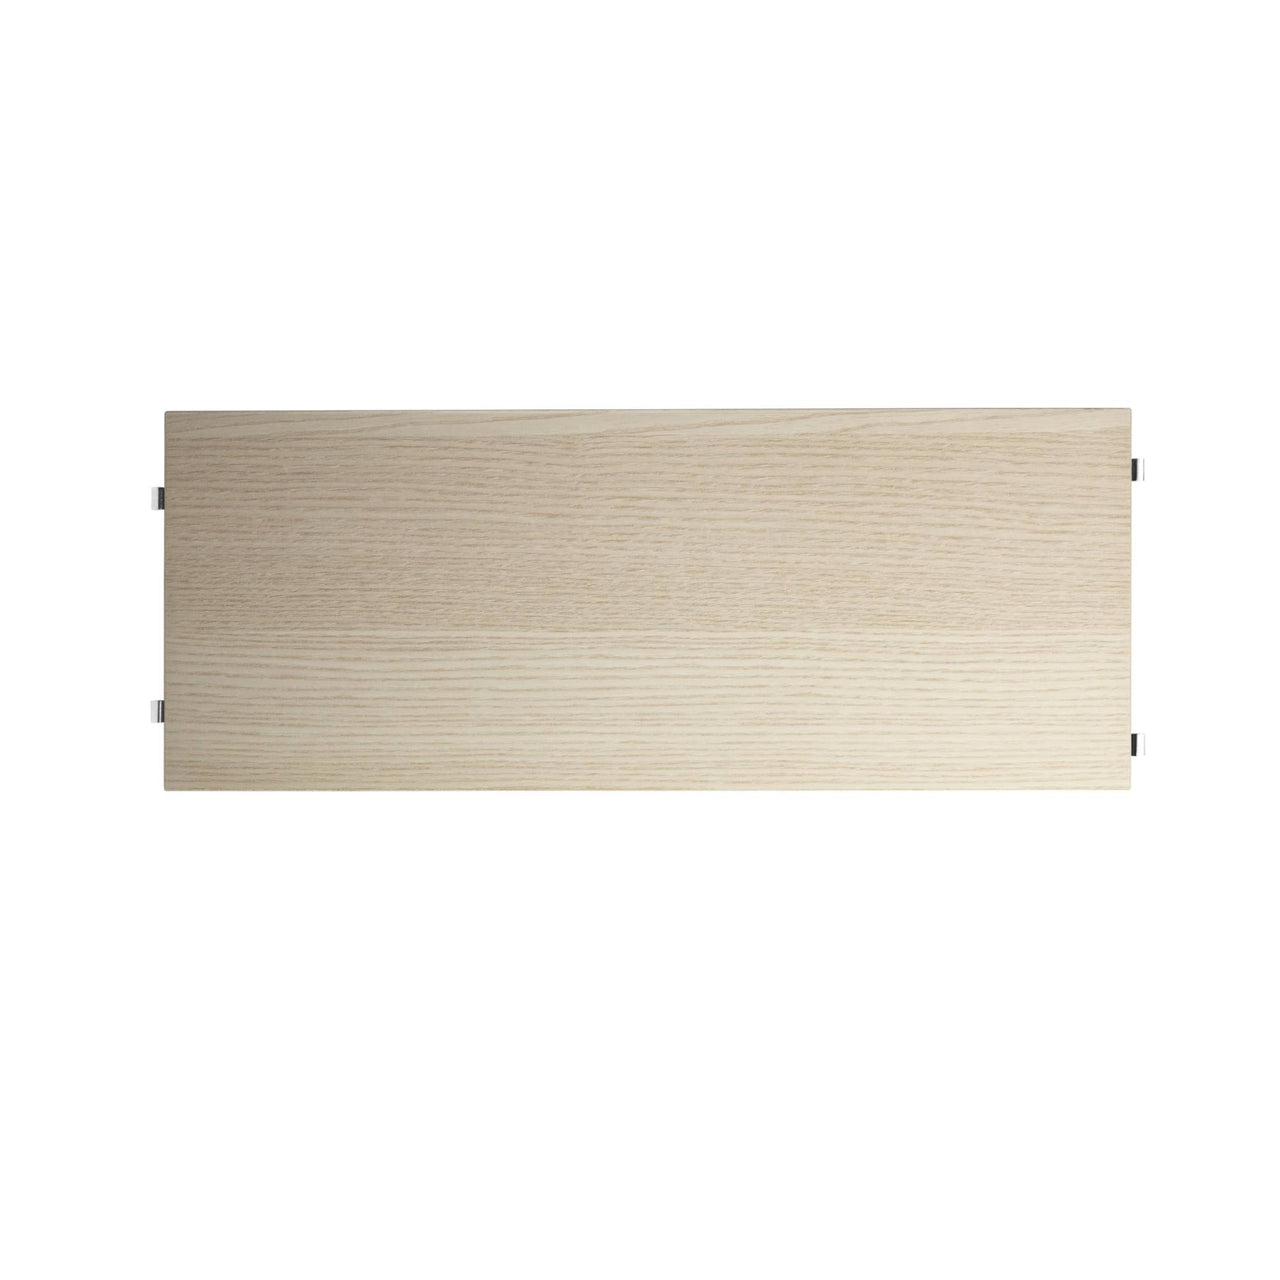 String System: Shelves (3-Pack) + 58 x 20 cm + Ash